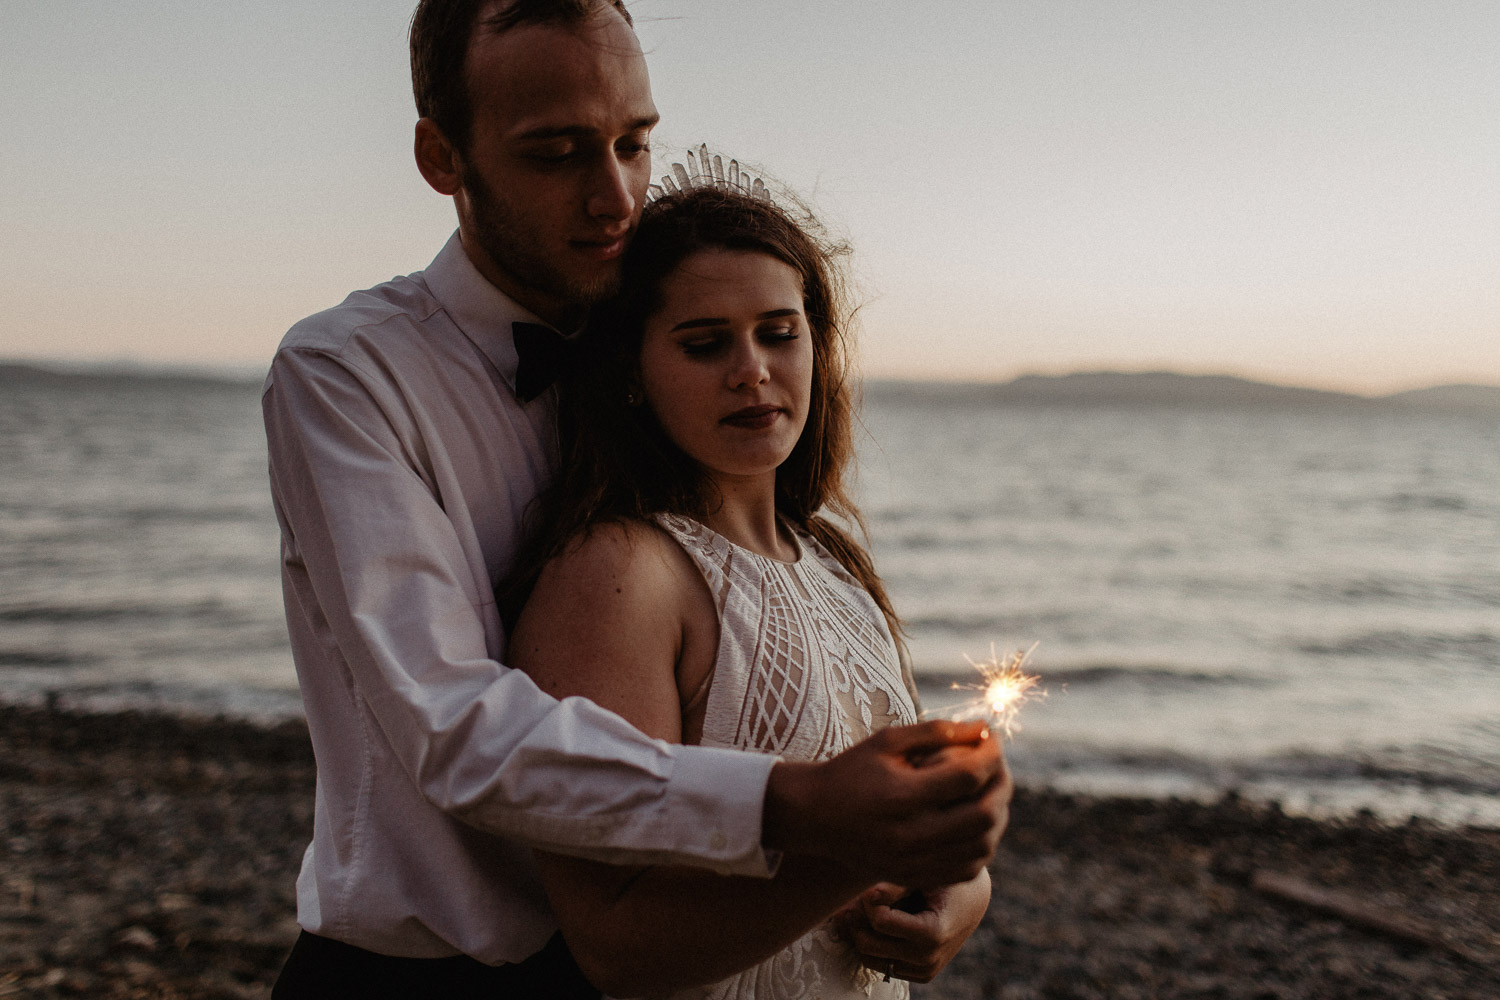 Image of groom and bride burn a sparkler together on the beach